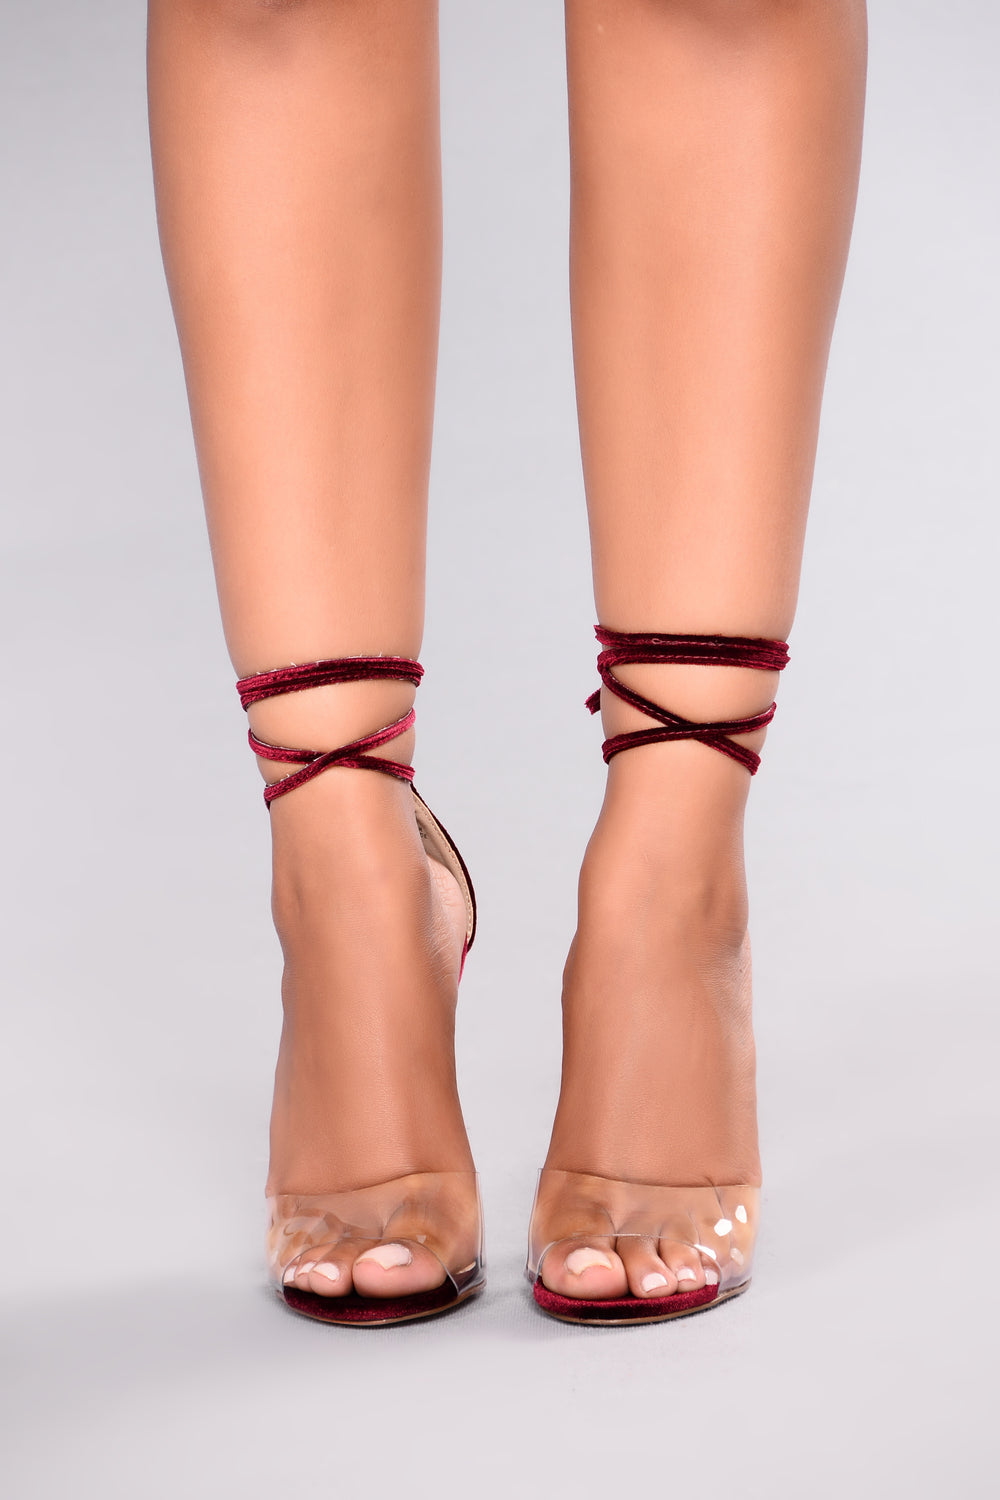 GiGi Clear Toe Heel - Wine